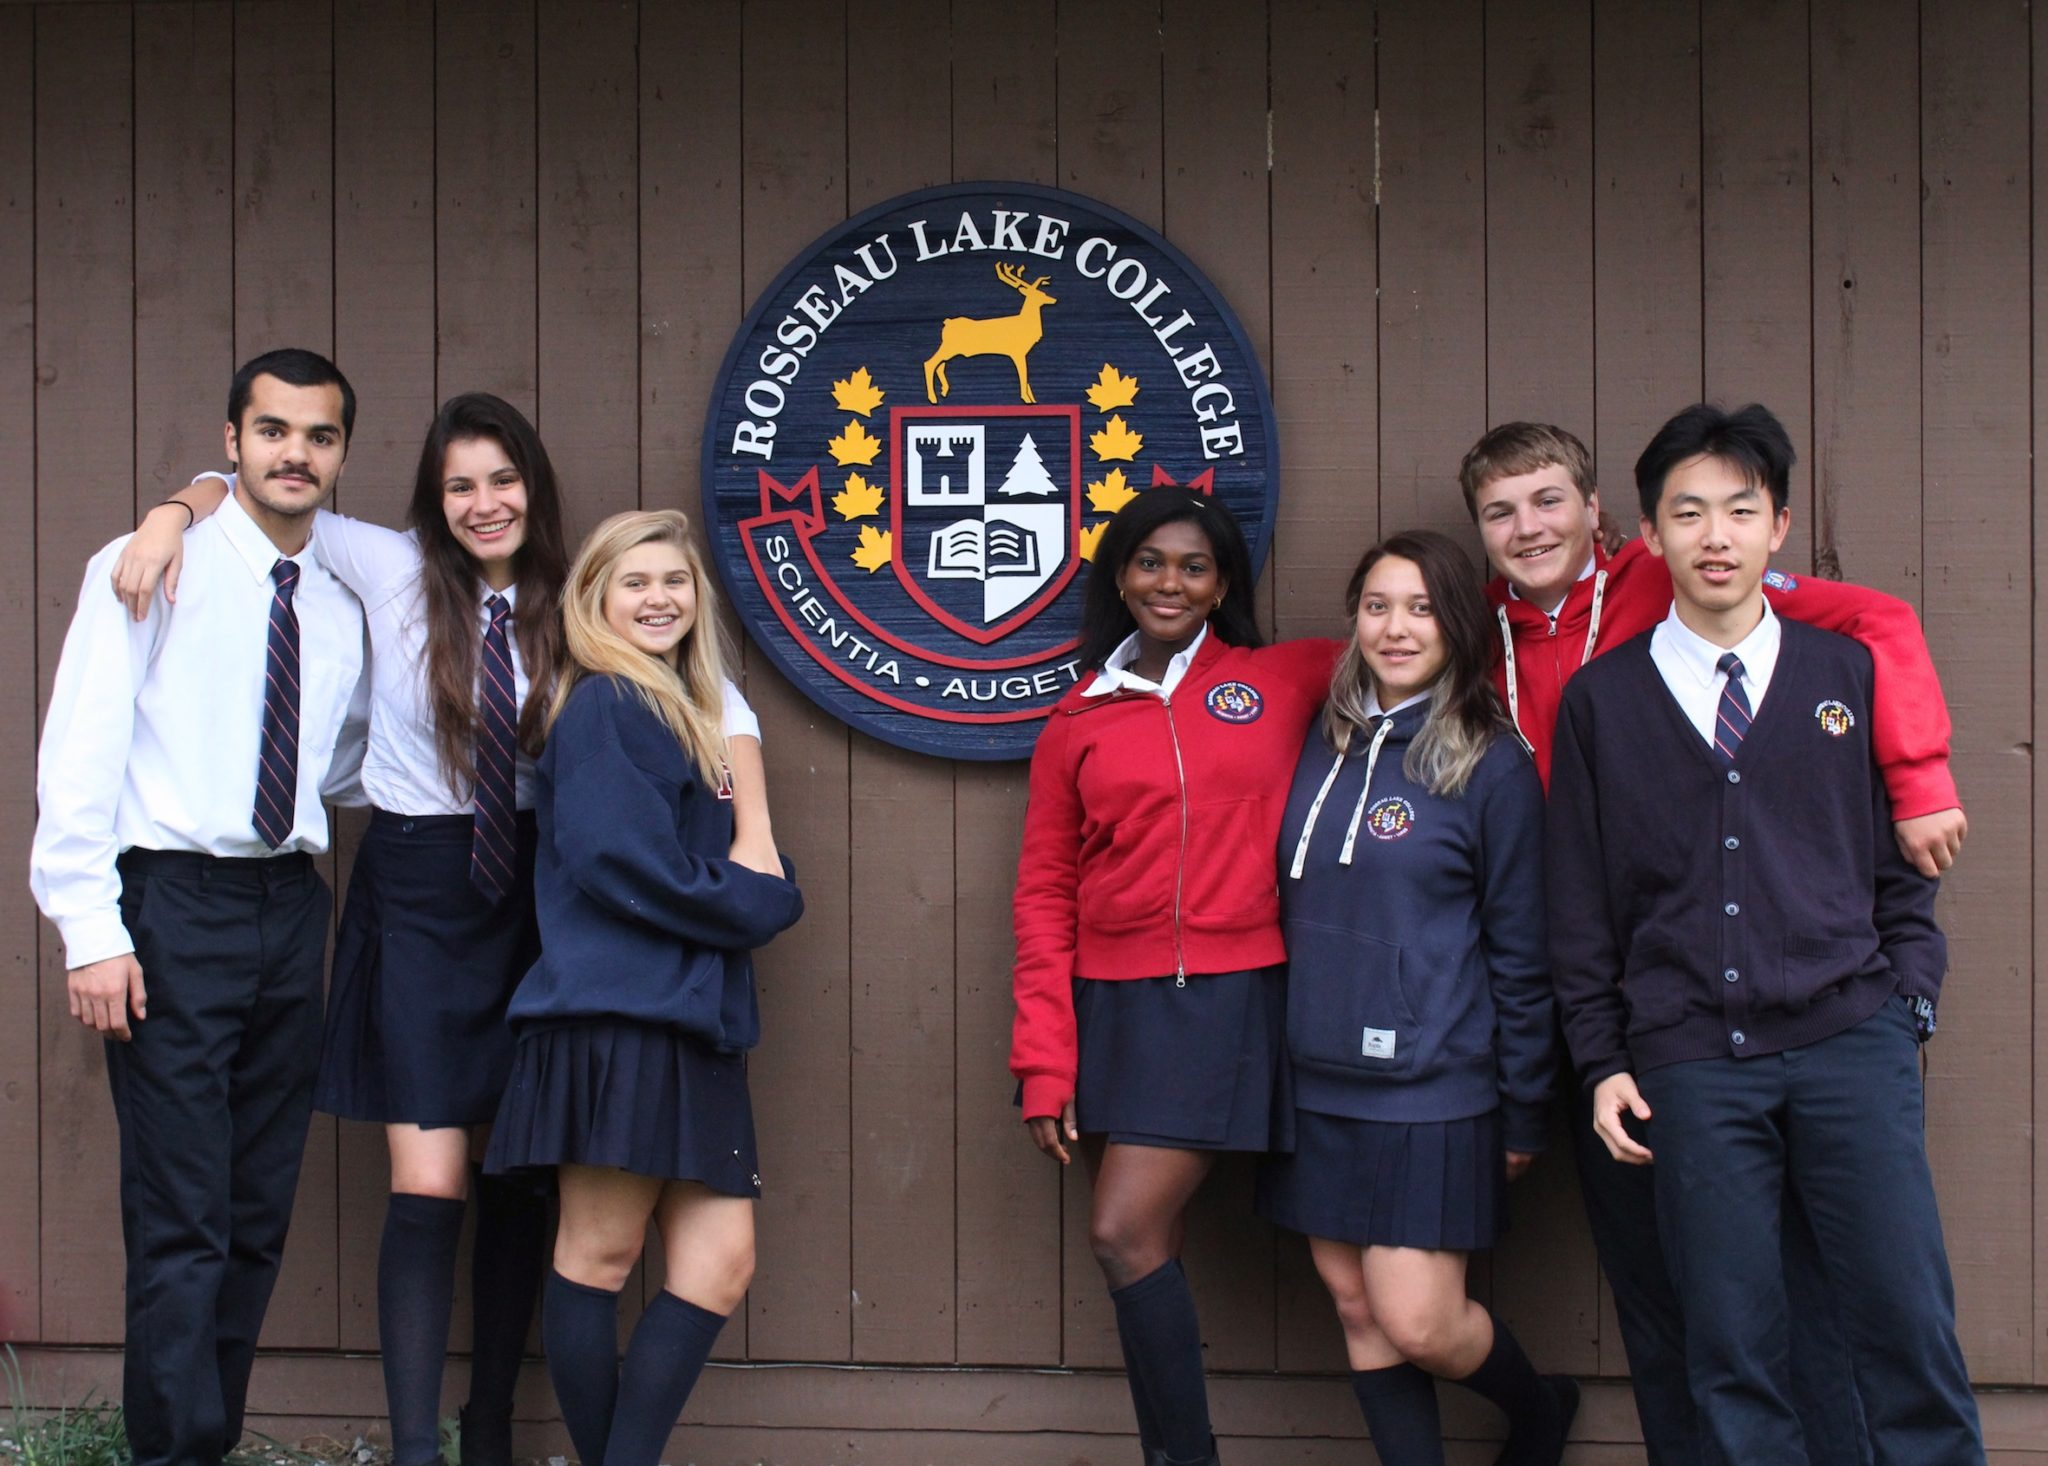 A group of smiling students poses in front of the RLC dining hall logo.